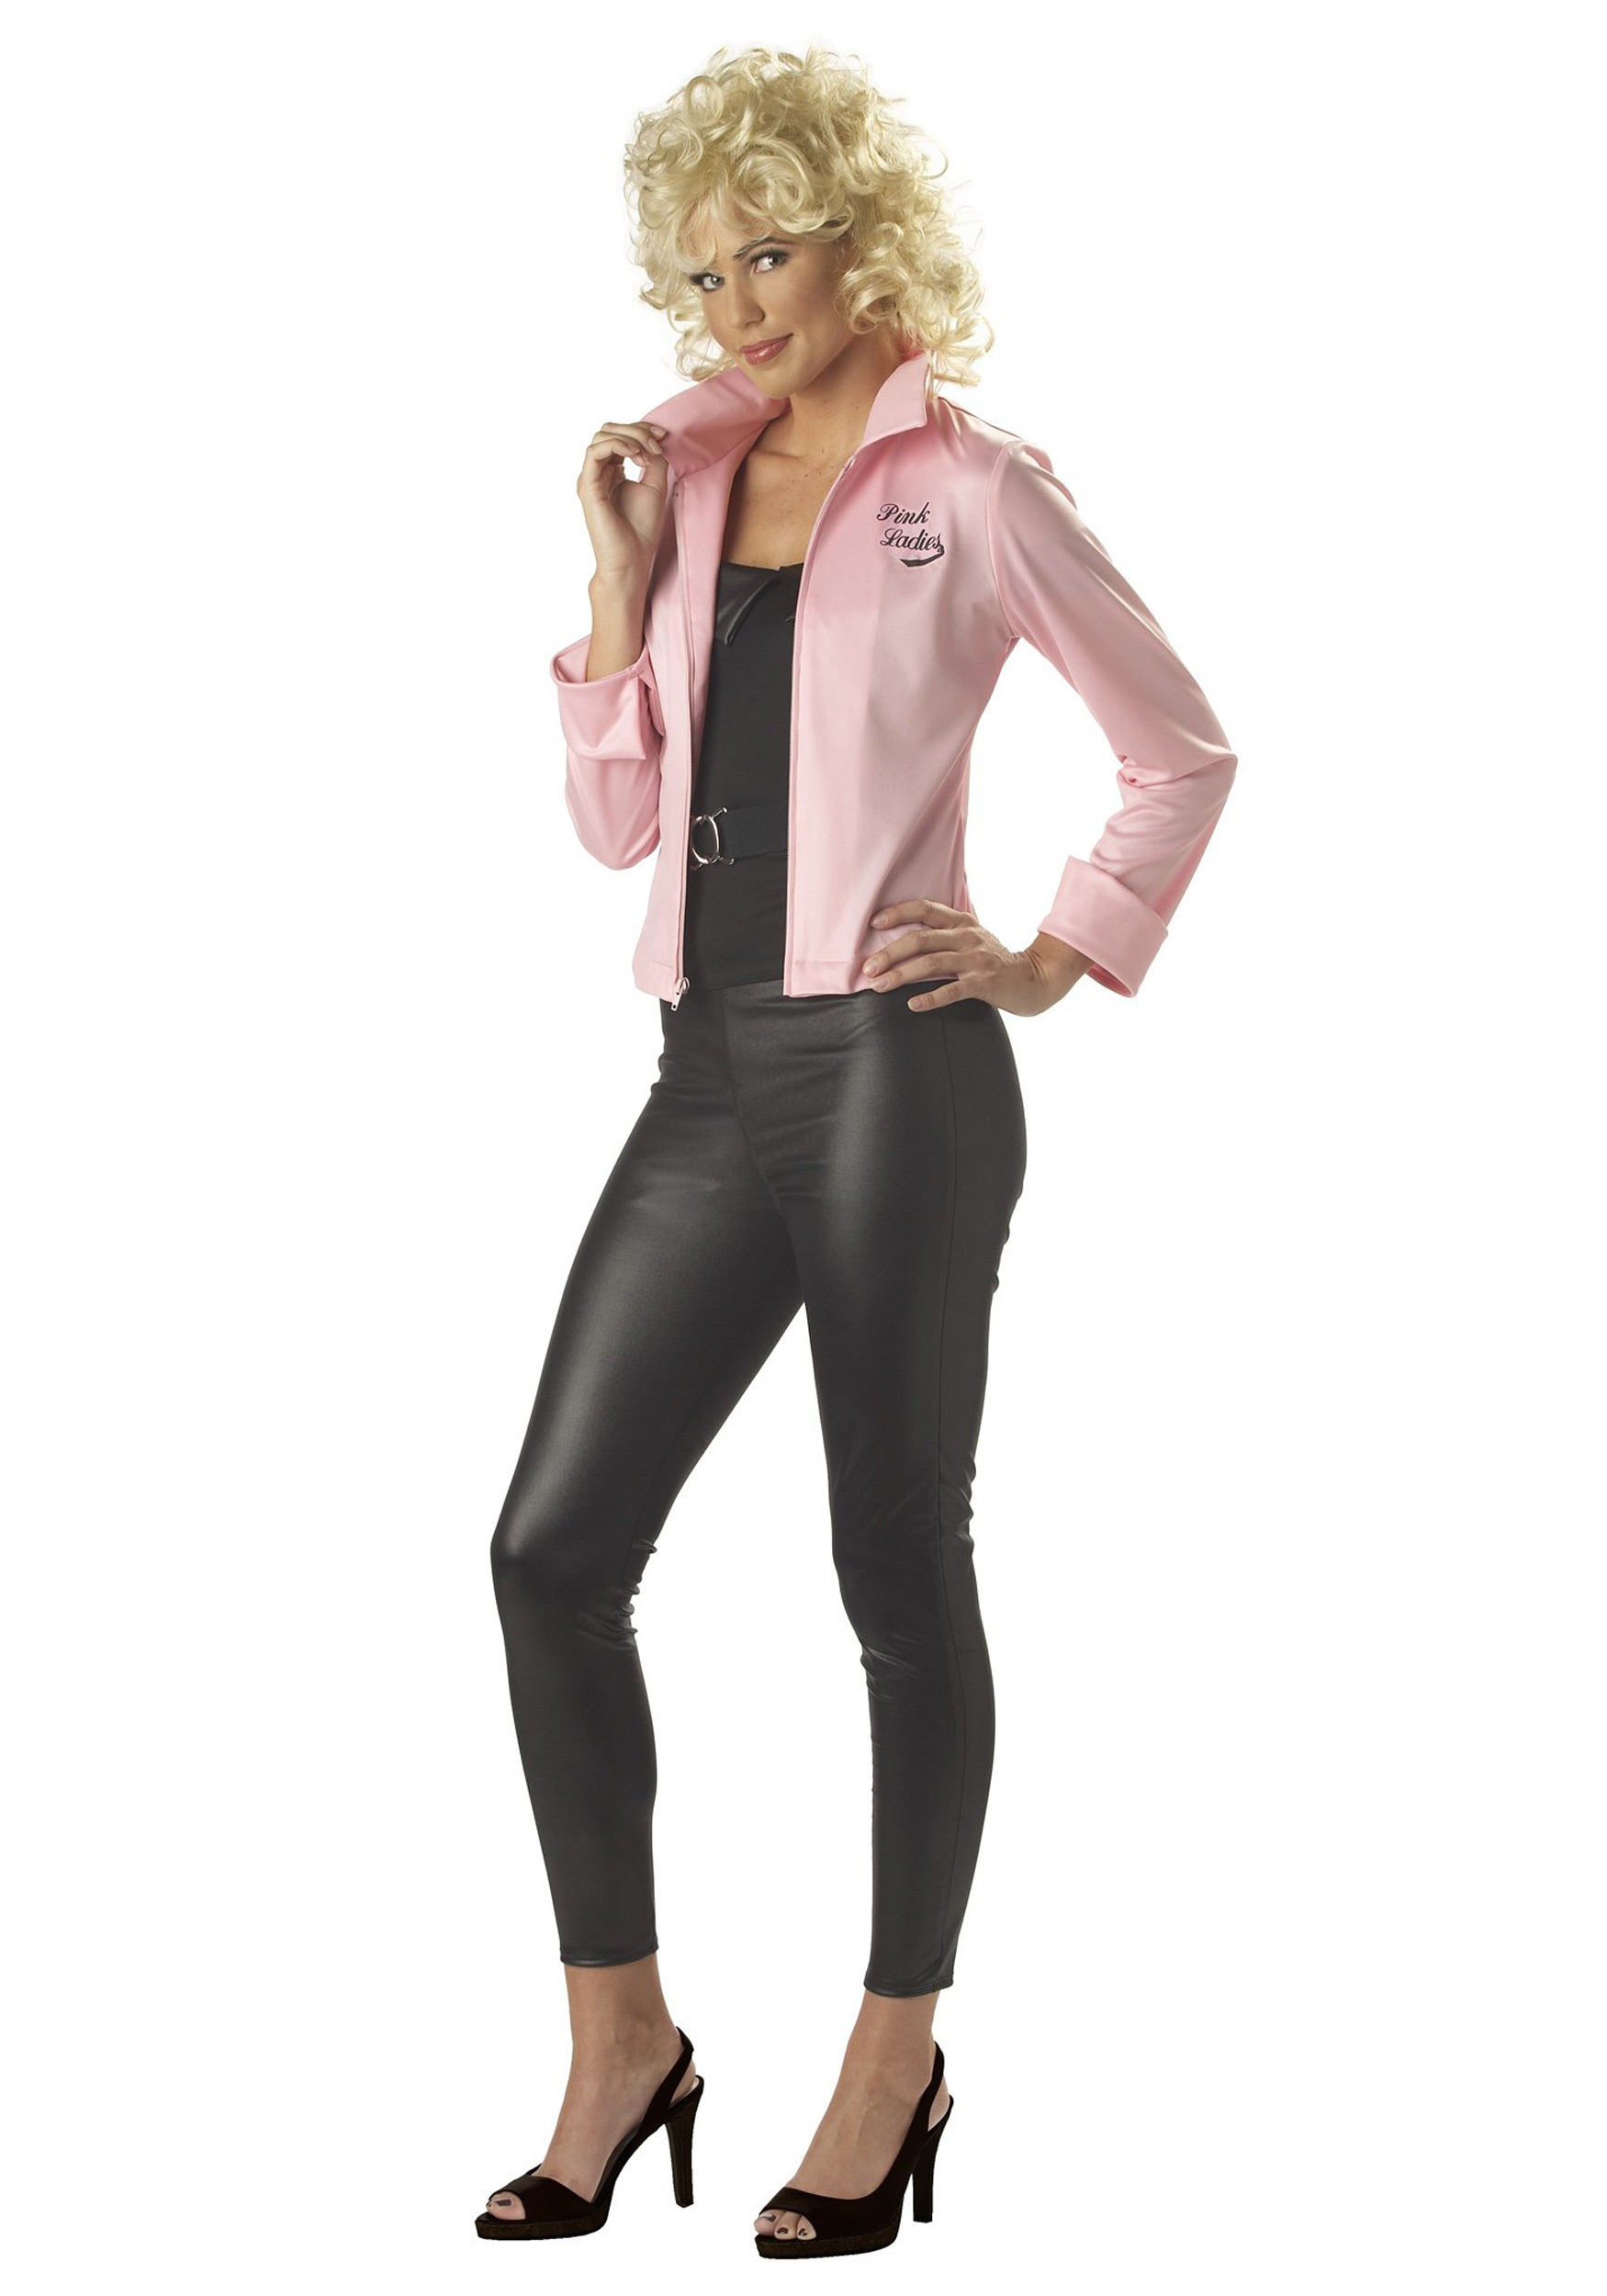 Pink Ladies Jacket Halloween Costume Ideas 2018